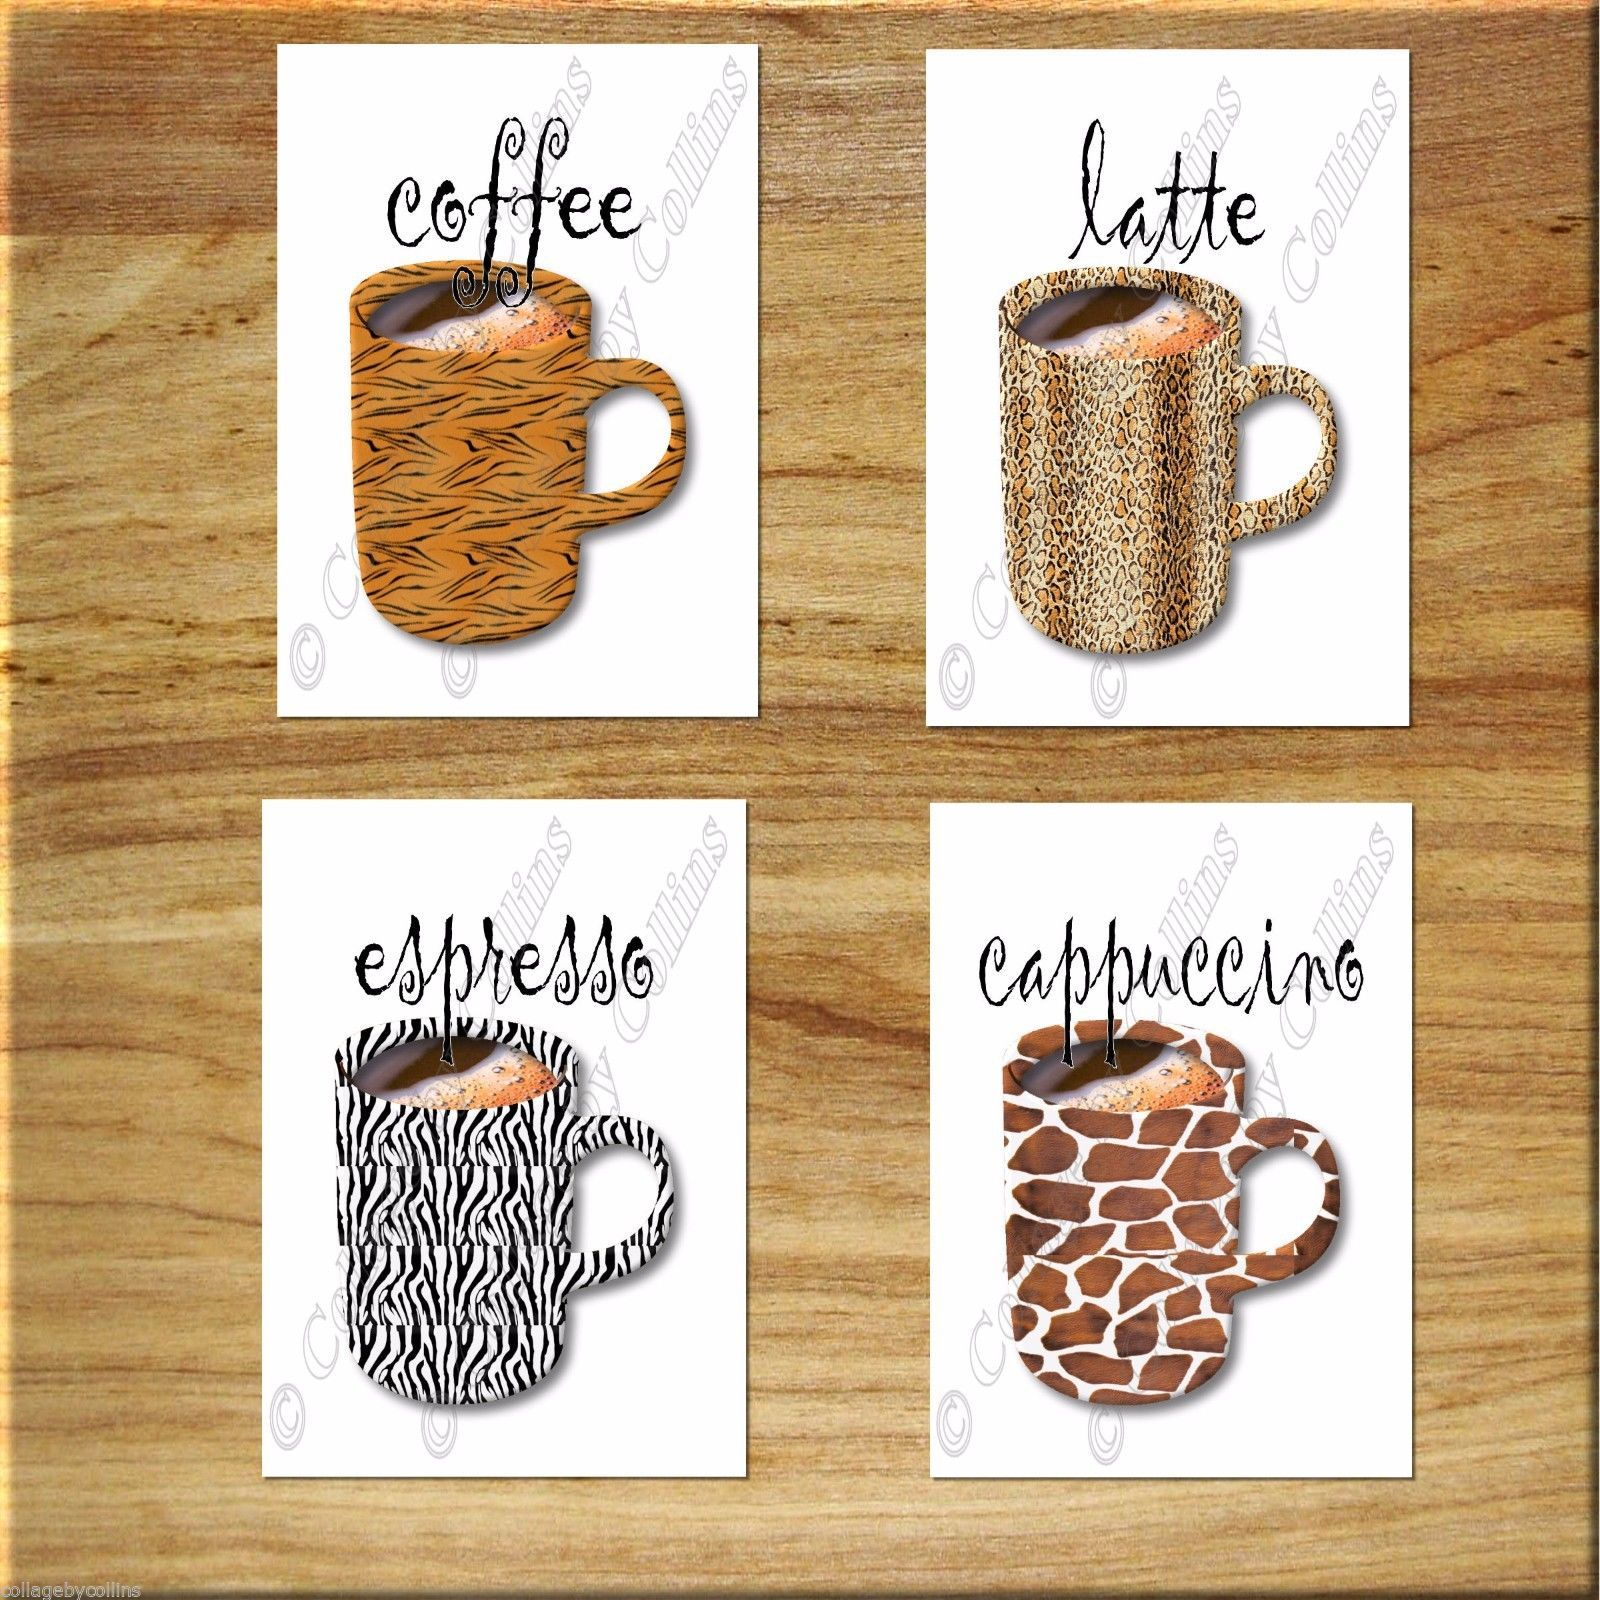 Primary image for Kitchen Coffee Wall Art Decor Leopard Zebra Tiger Giraffe Print Mugs Cups Latte